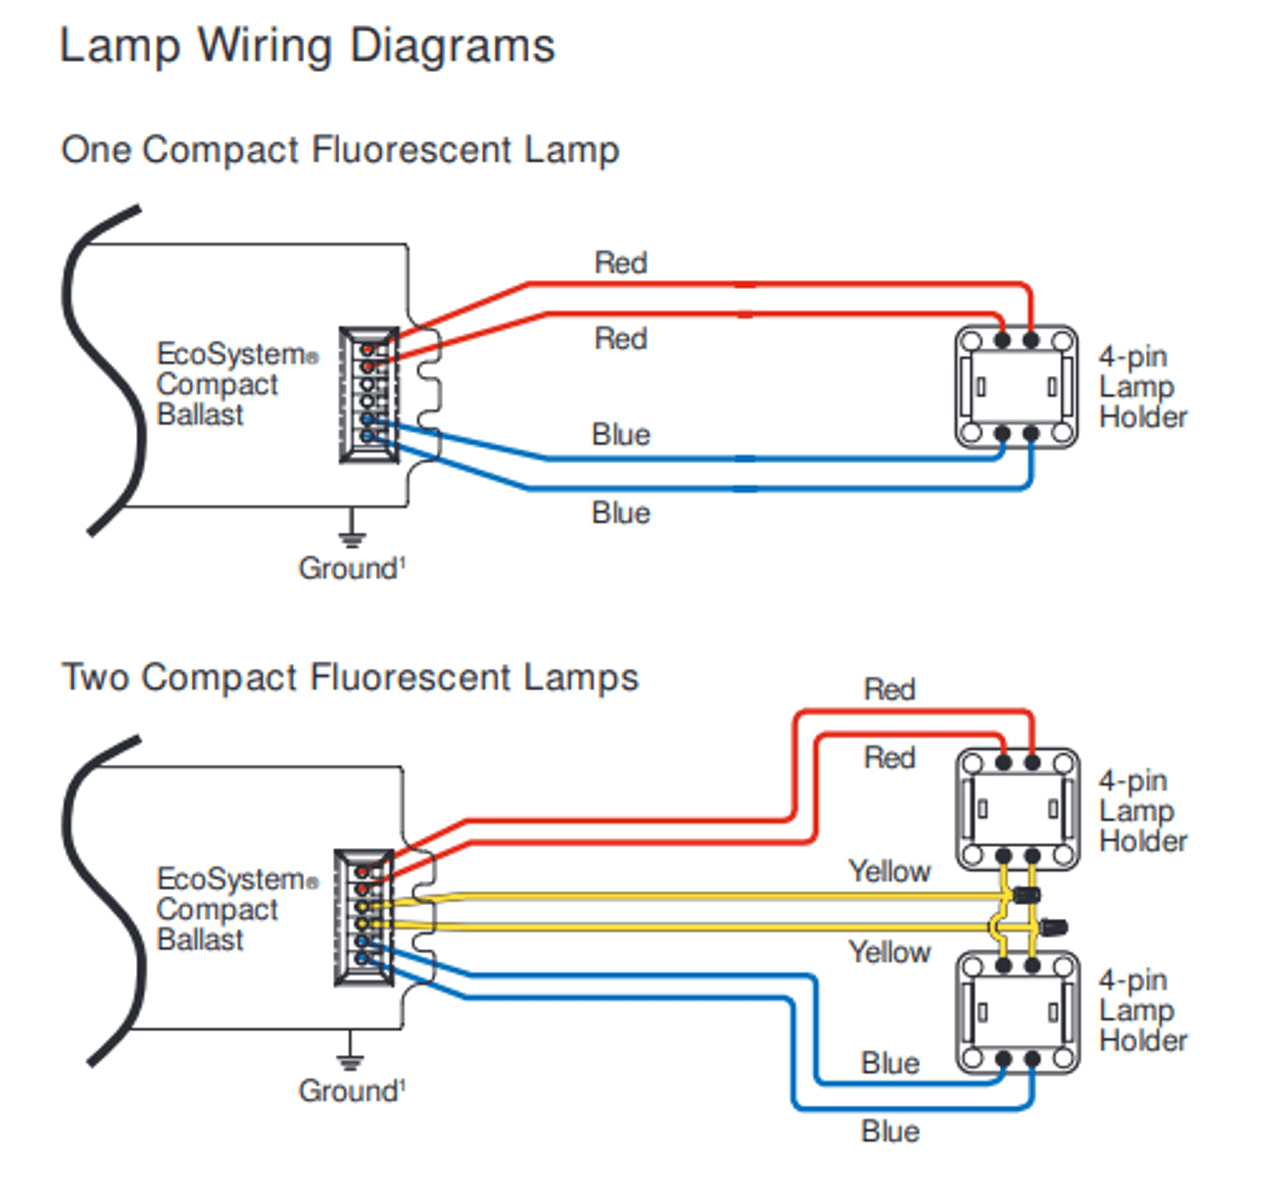 small resolution of ec3dt4mwku1s lutron electronic fluorescent dimming ballastec3dt4mwku1s lutron ec3dt4mwku1s dimensions ec3dt4mwku1s wiring diagram